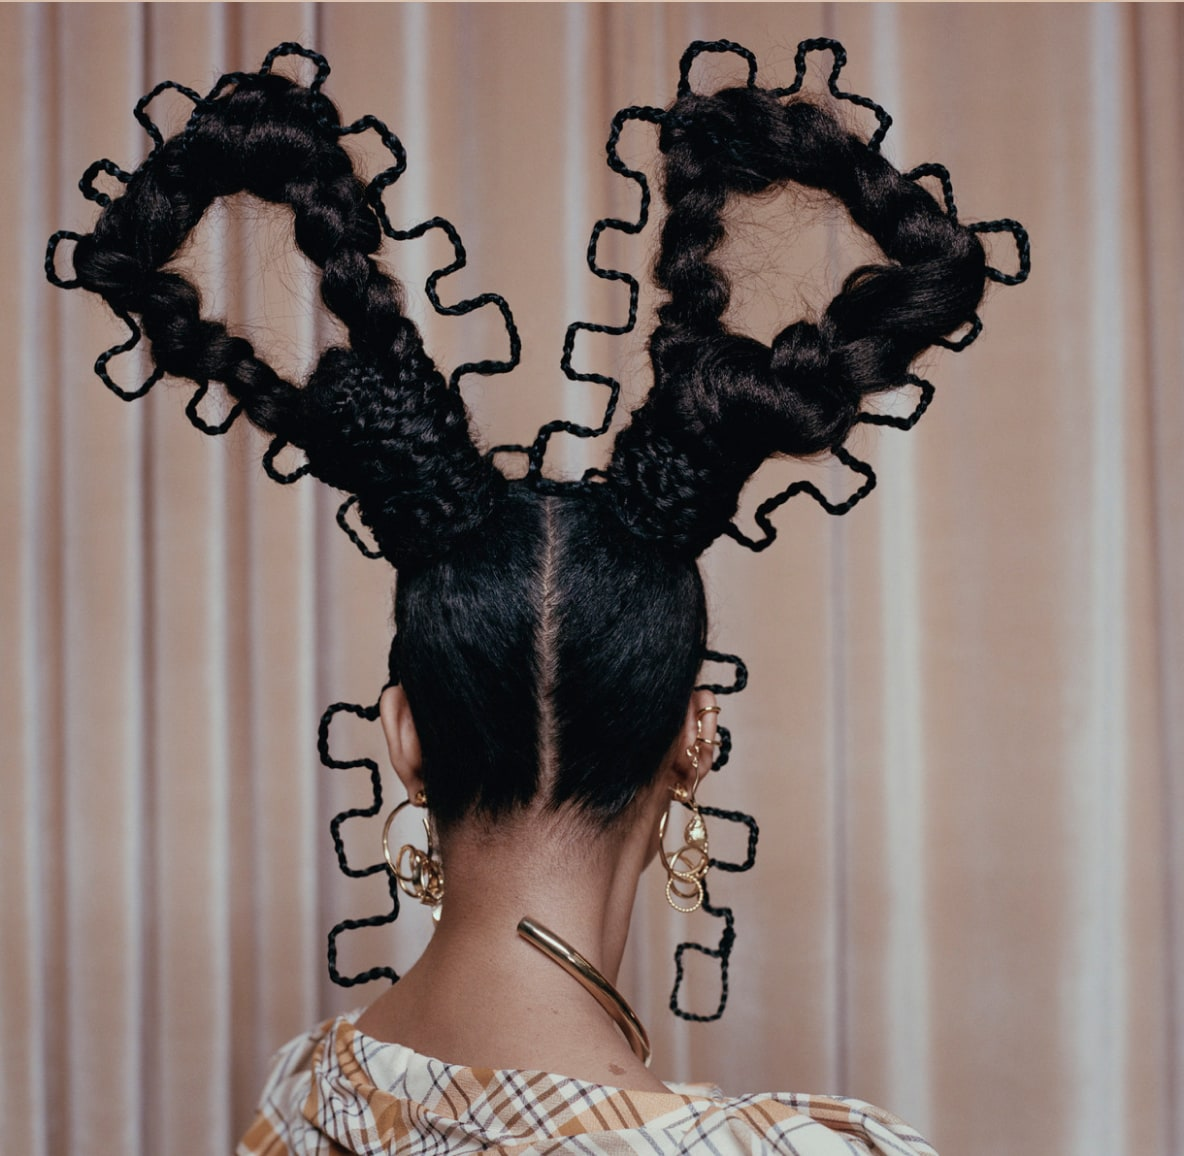 Back of woman's head with intricate, abstract braiding styles and a center part